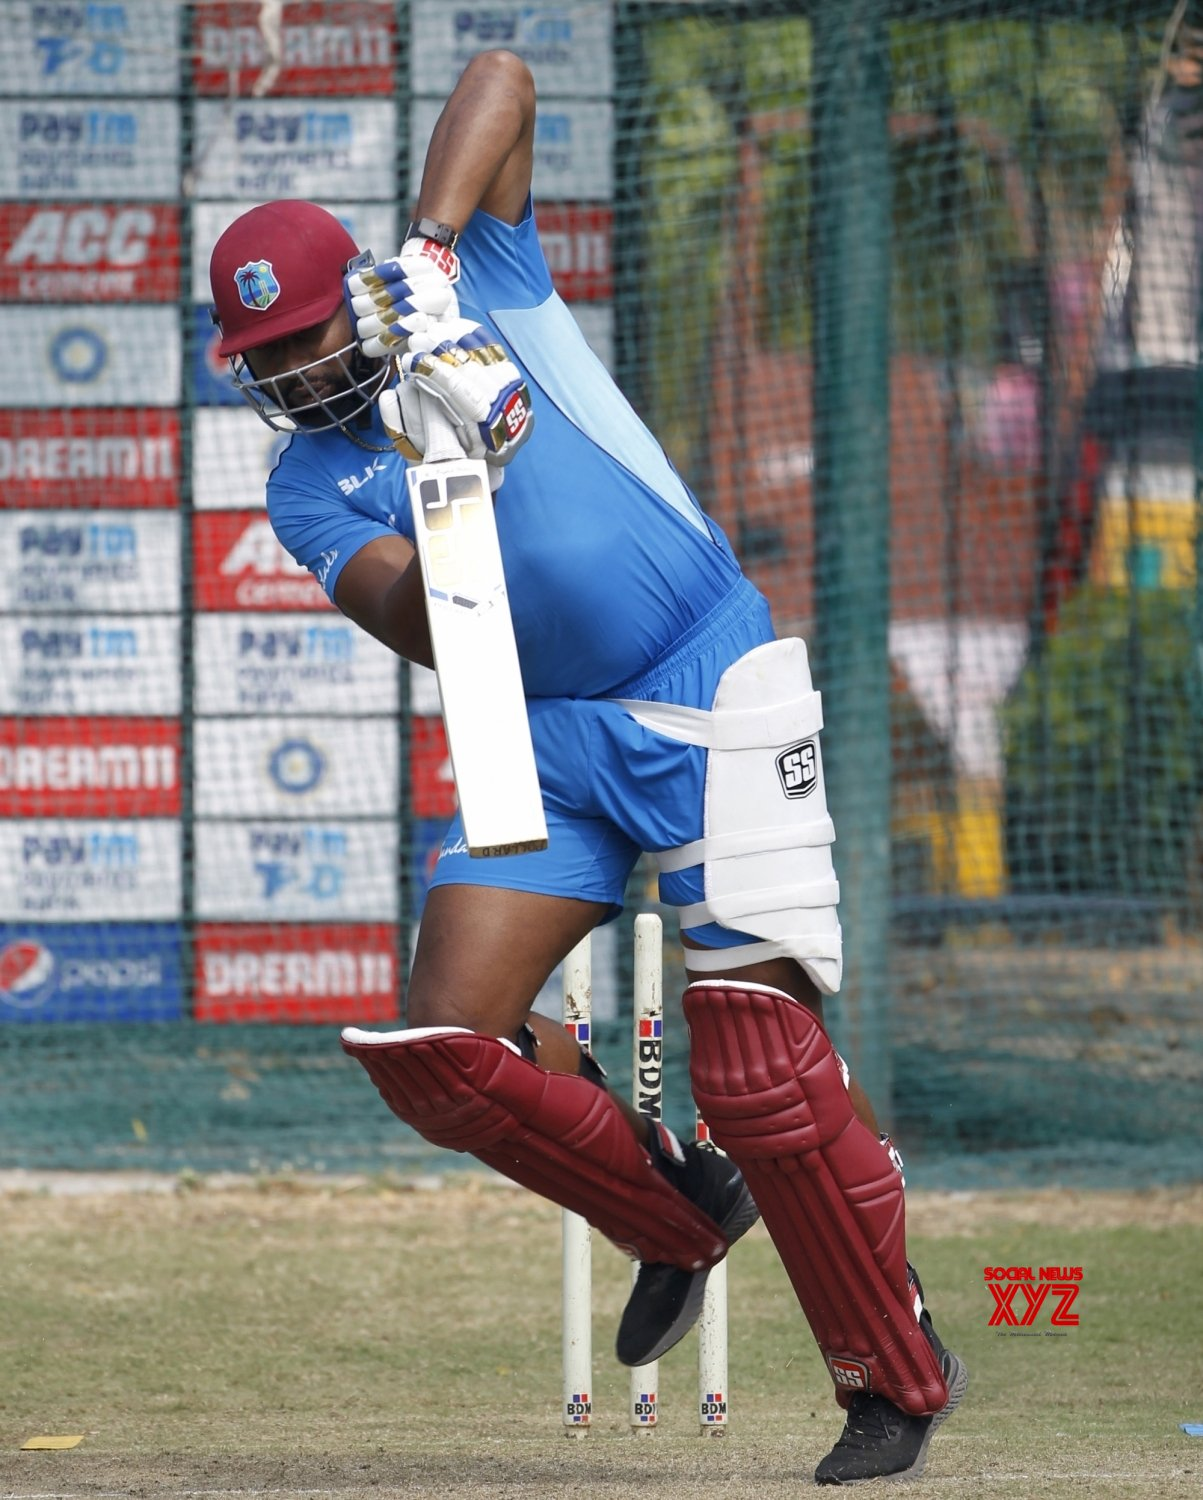 Hyderabad: West Indies - practice session - Kieron Pollard #Gallery